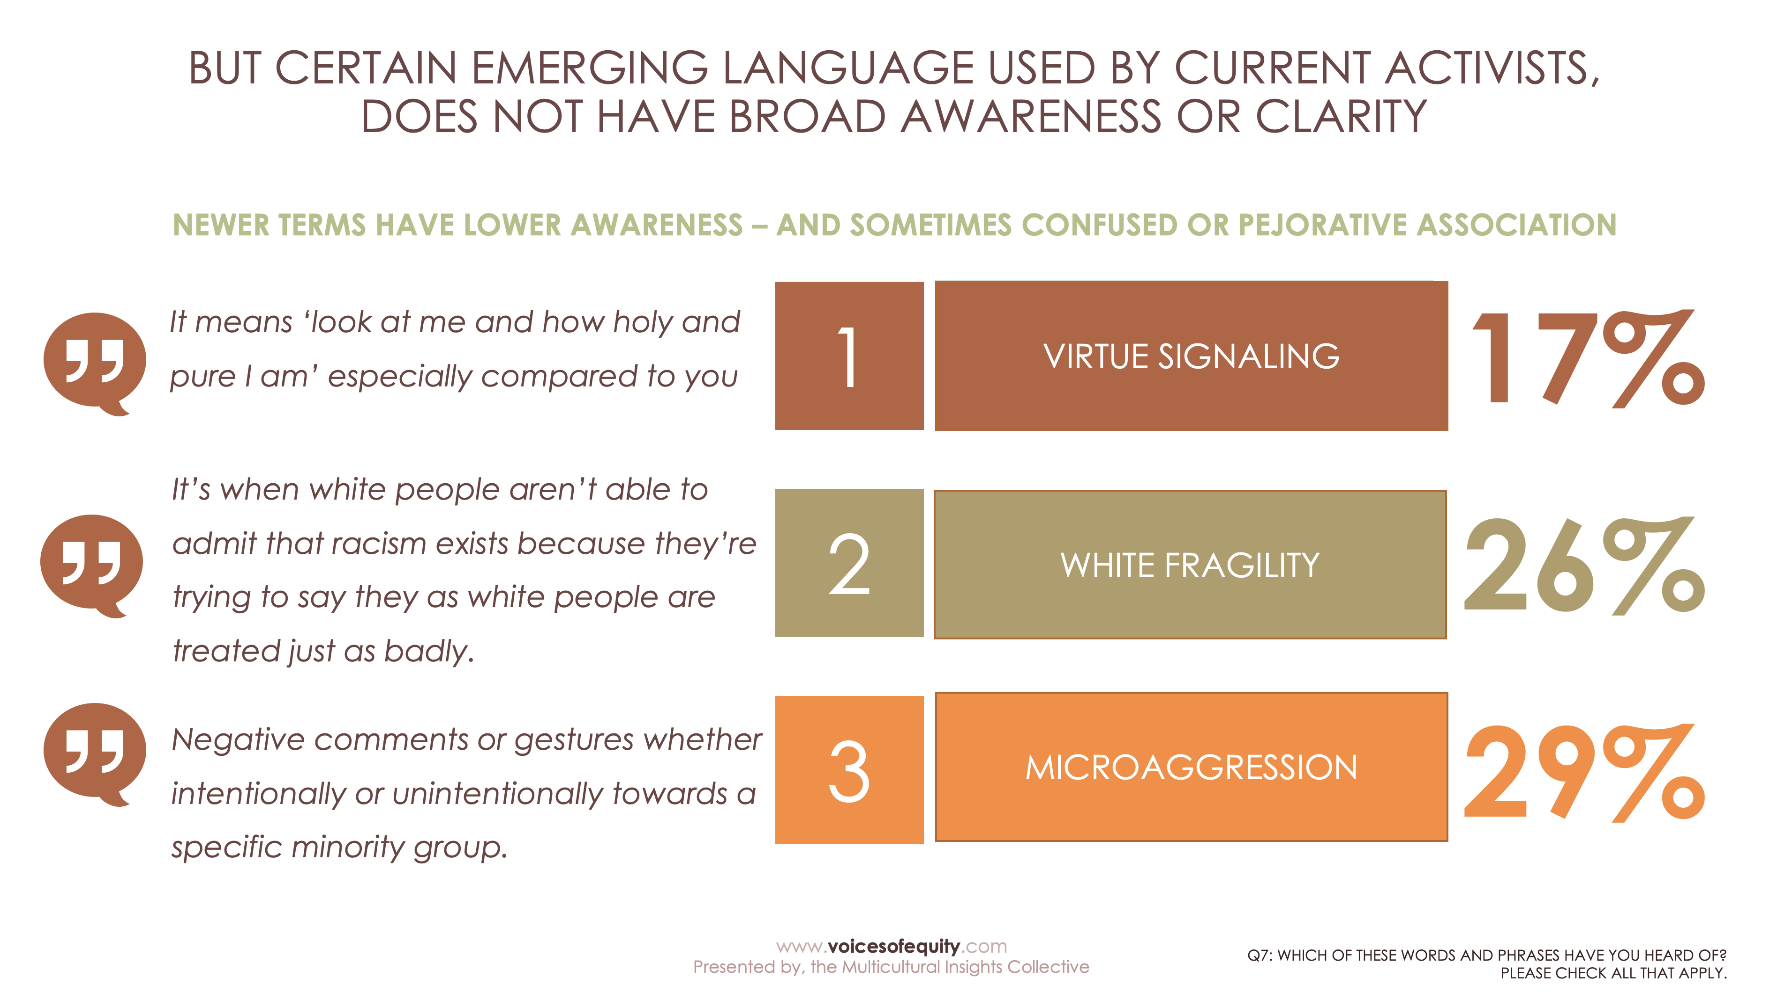 Definitions of virtue signaling, white fragility and microagression